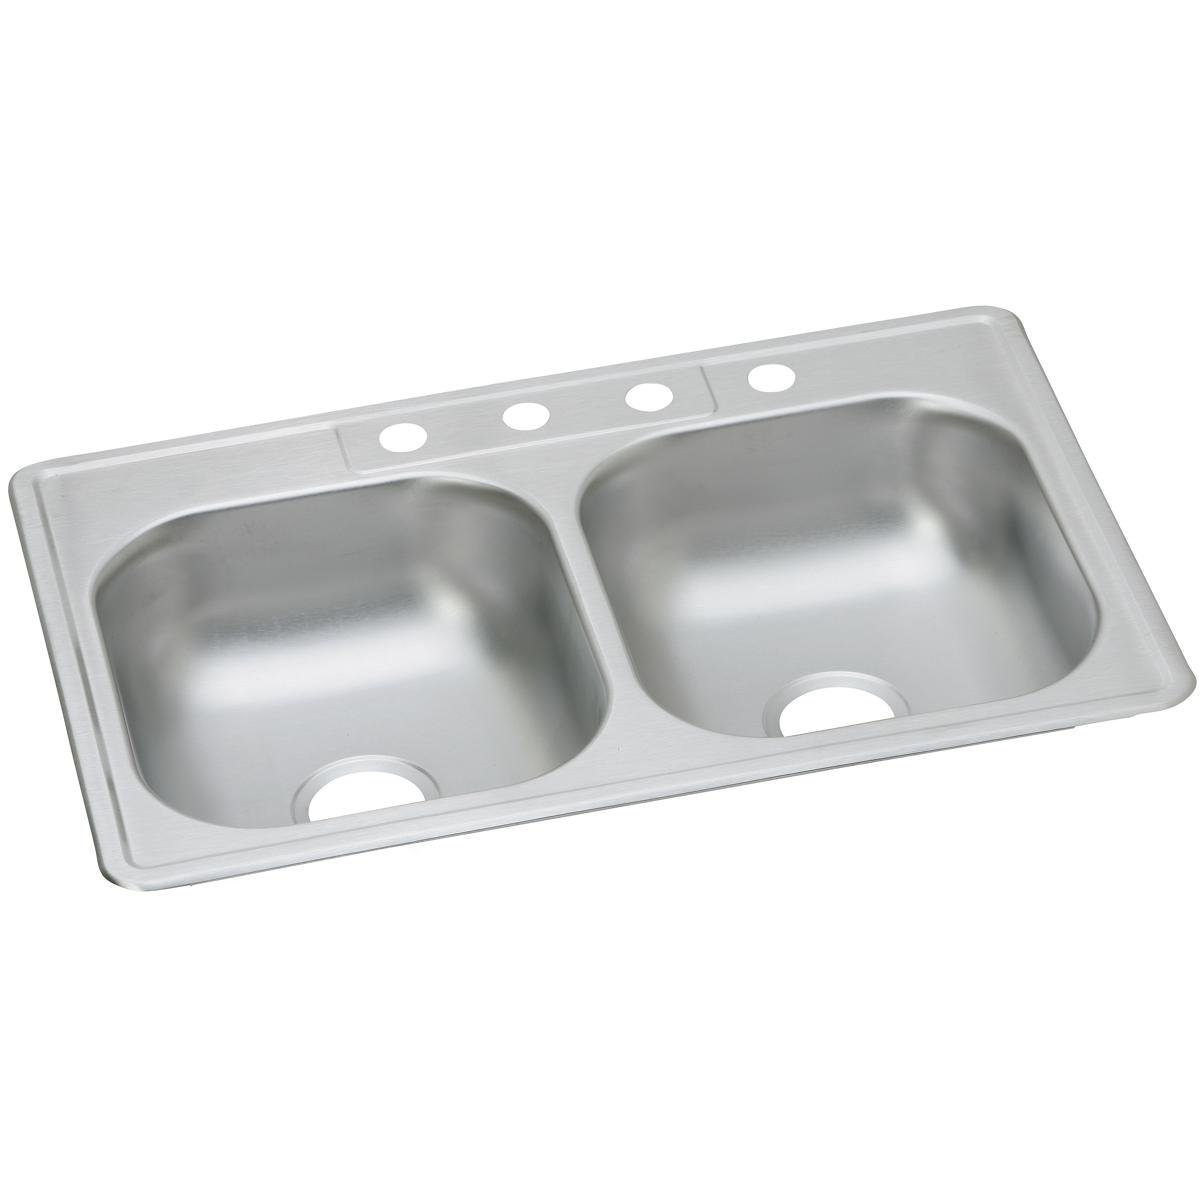 Dayton D233223 Equal Double Bowl Top Mount Stainless Steel Sink